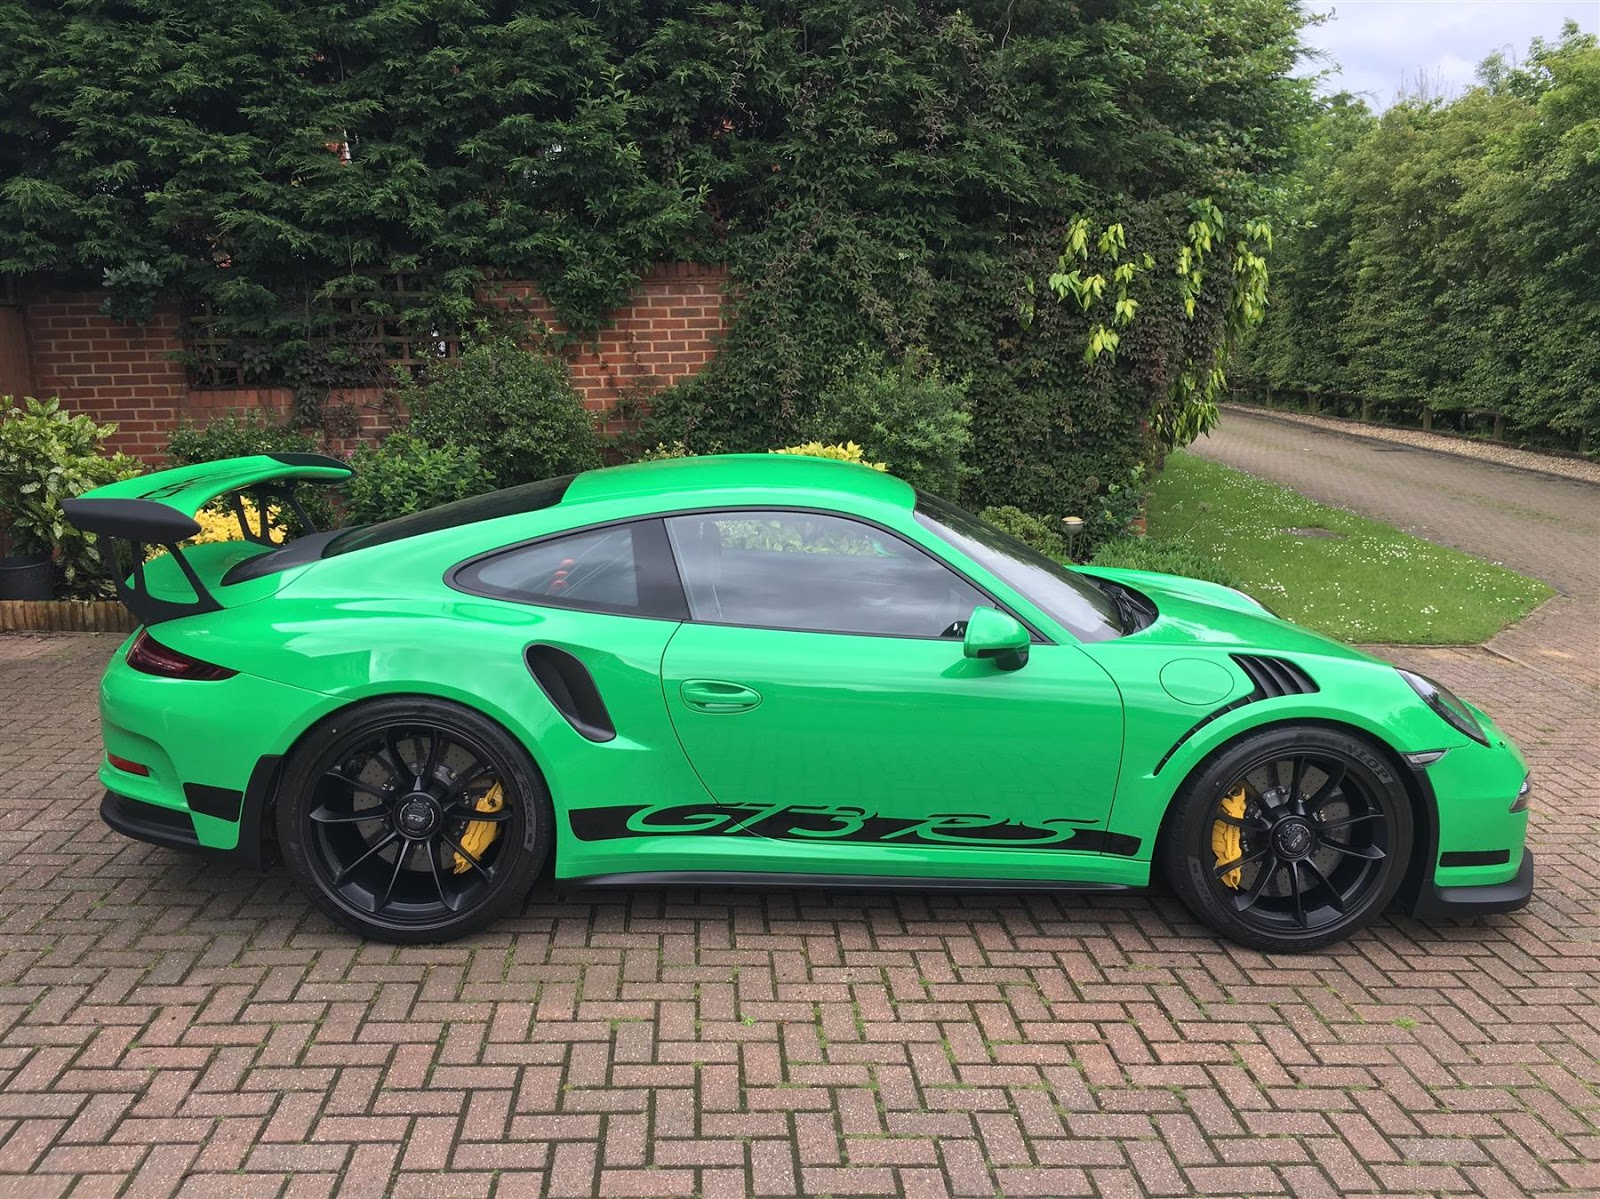 Bright Green Porsche 911 Gt3 Rs For Sale In Uk R4 3 Million